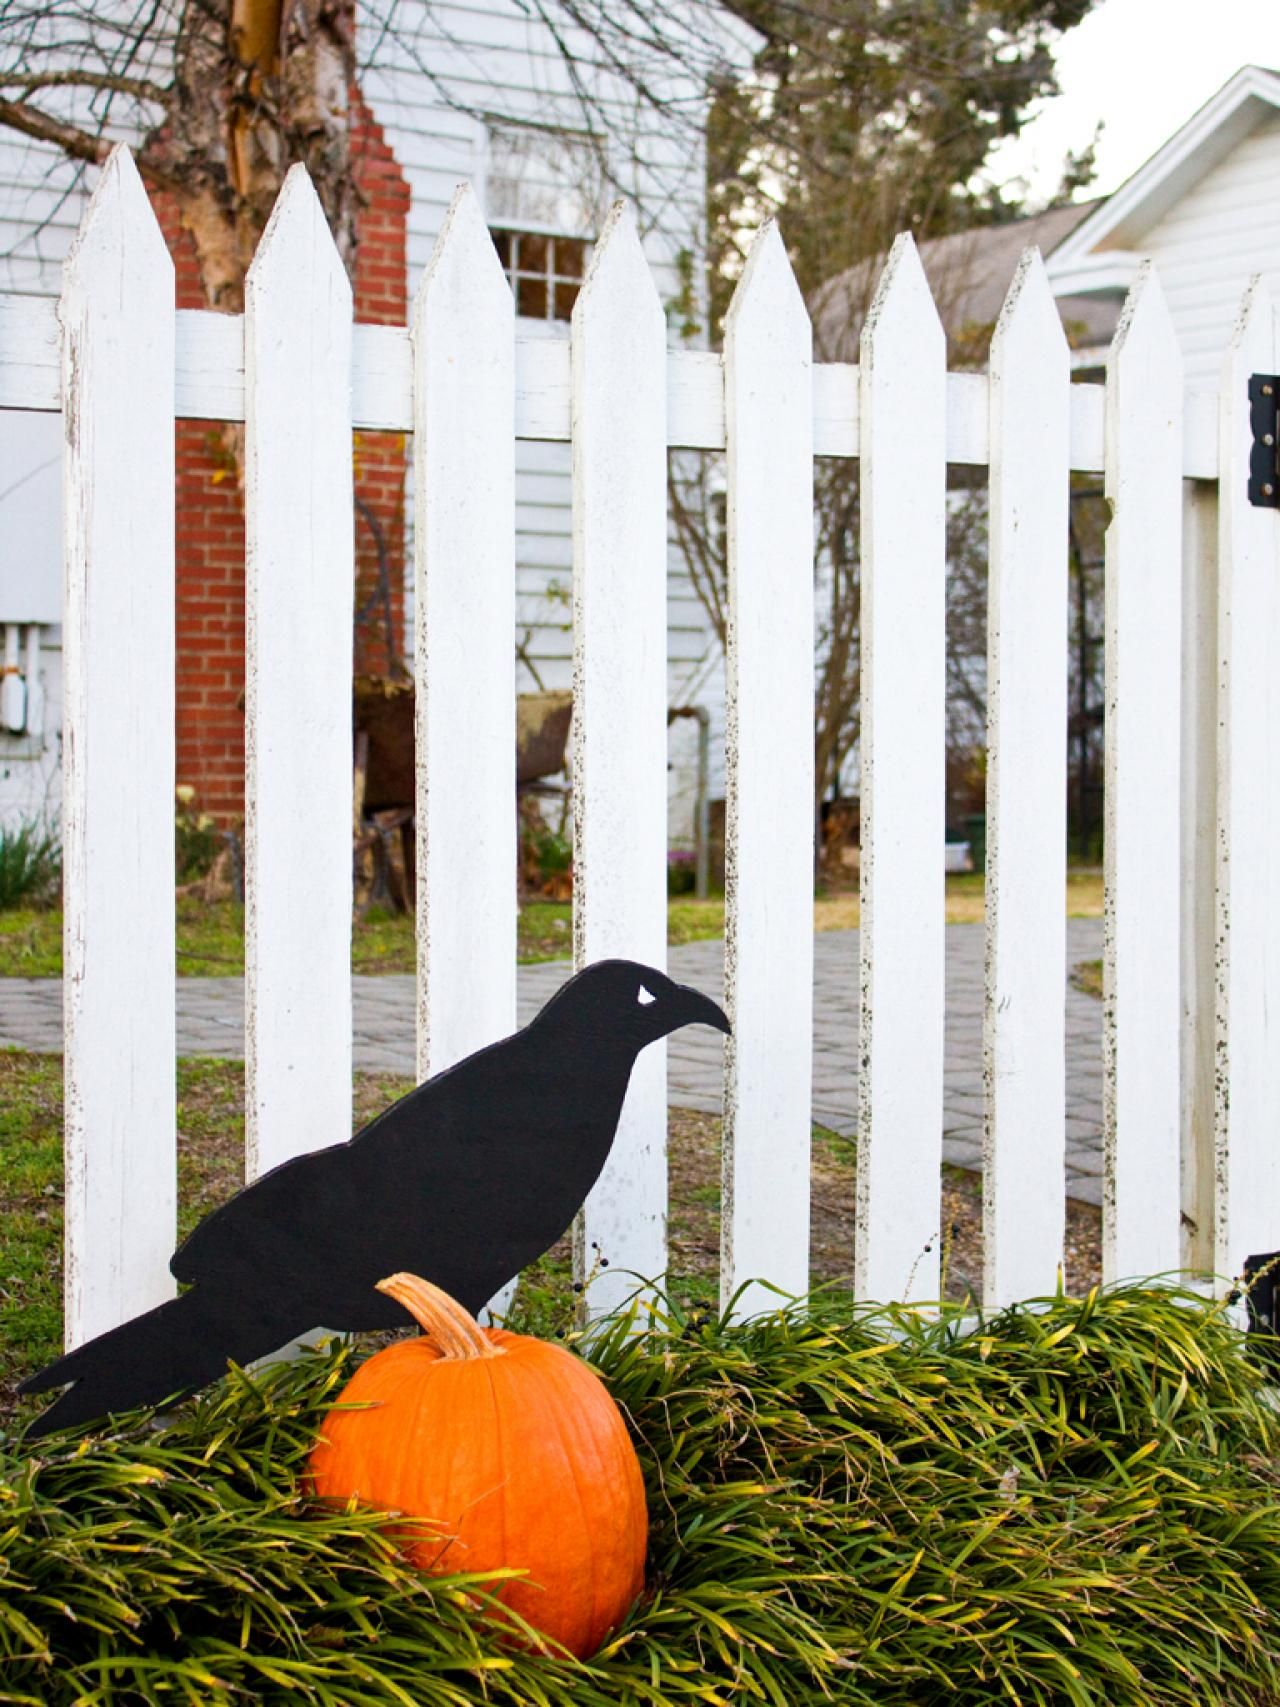 60 DIY Halloween Decorations  Decorating Ideas Halloween ideas - diy outdoor halloween decorations